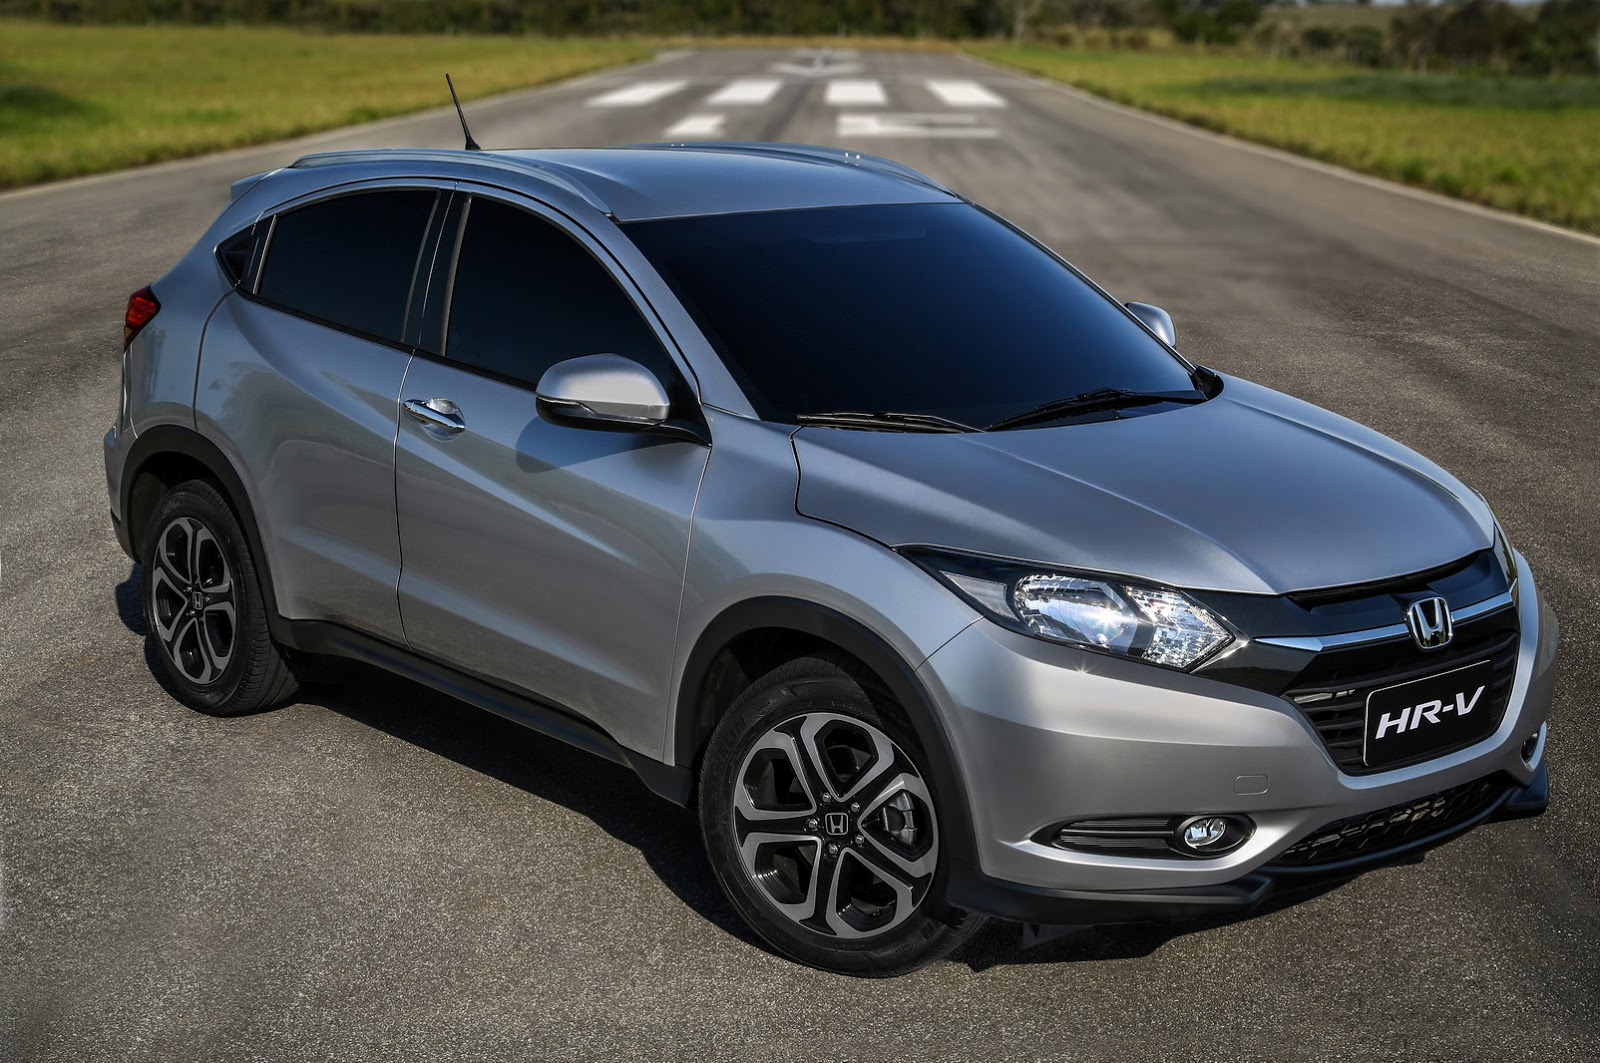 Honda HR-V (Vezel) Gets Watered Down for Brazil Market - autoevolution